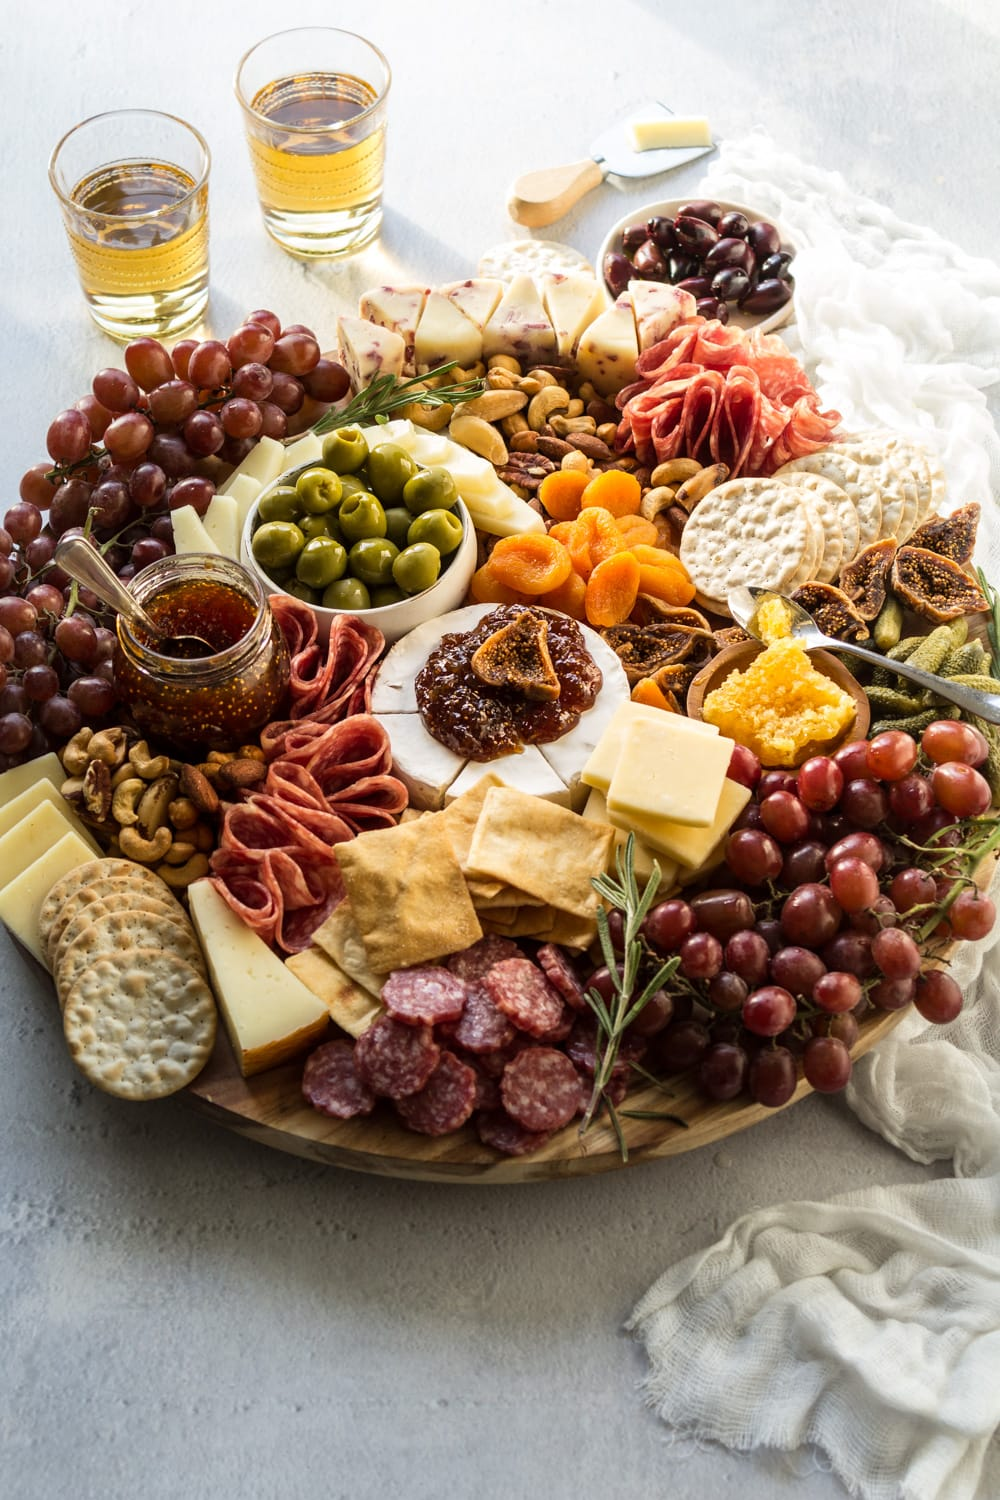 The best charcuterie cheese board with meats, cheeses, nuts, and dried fruit